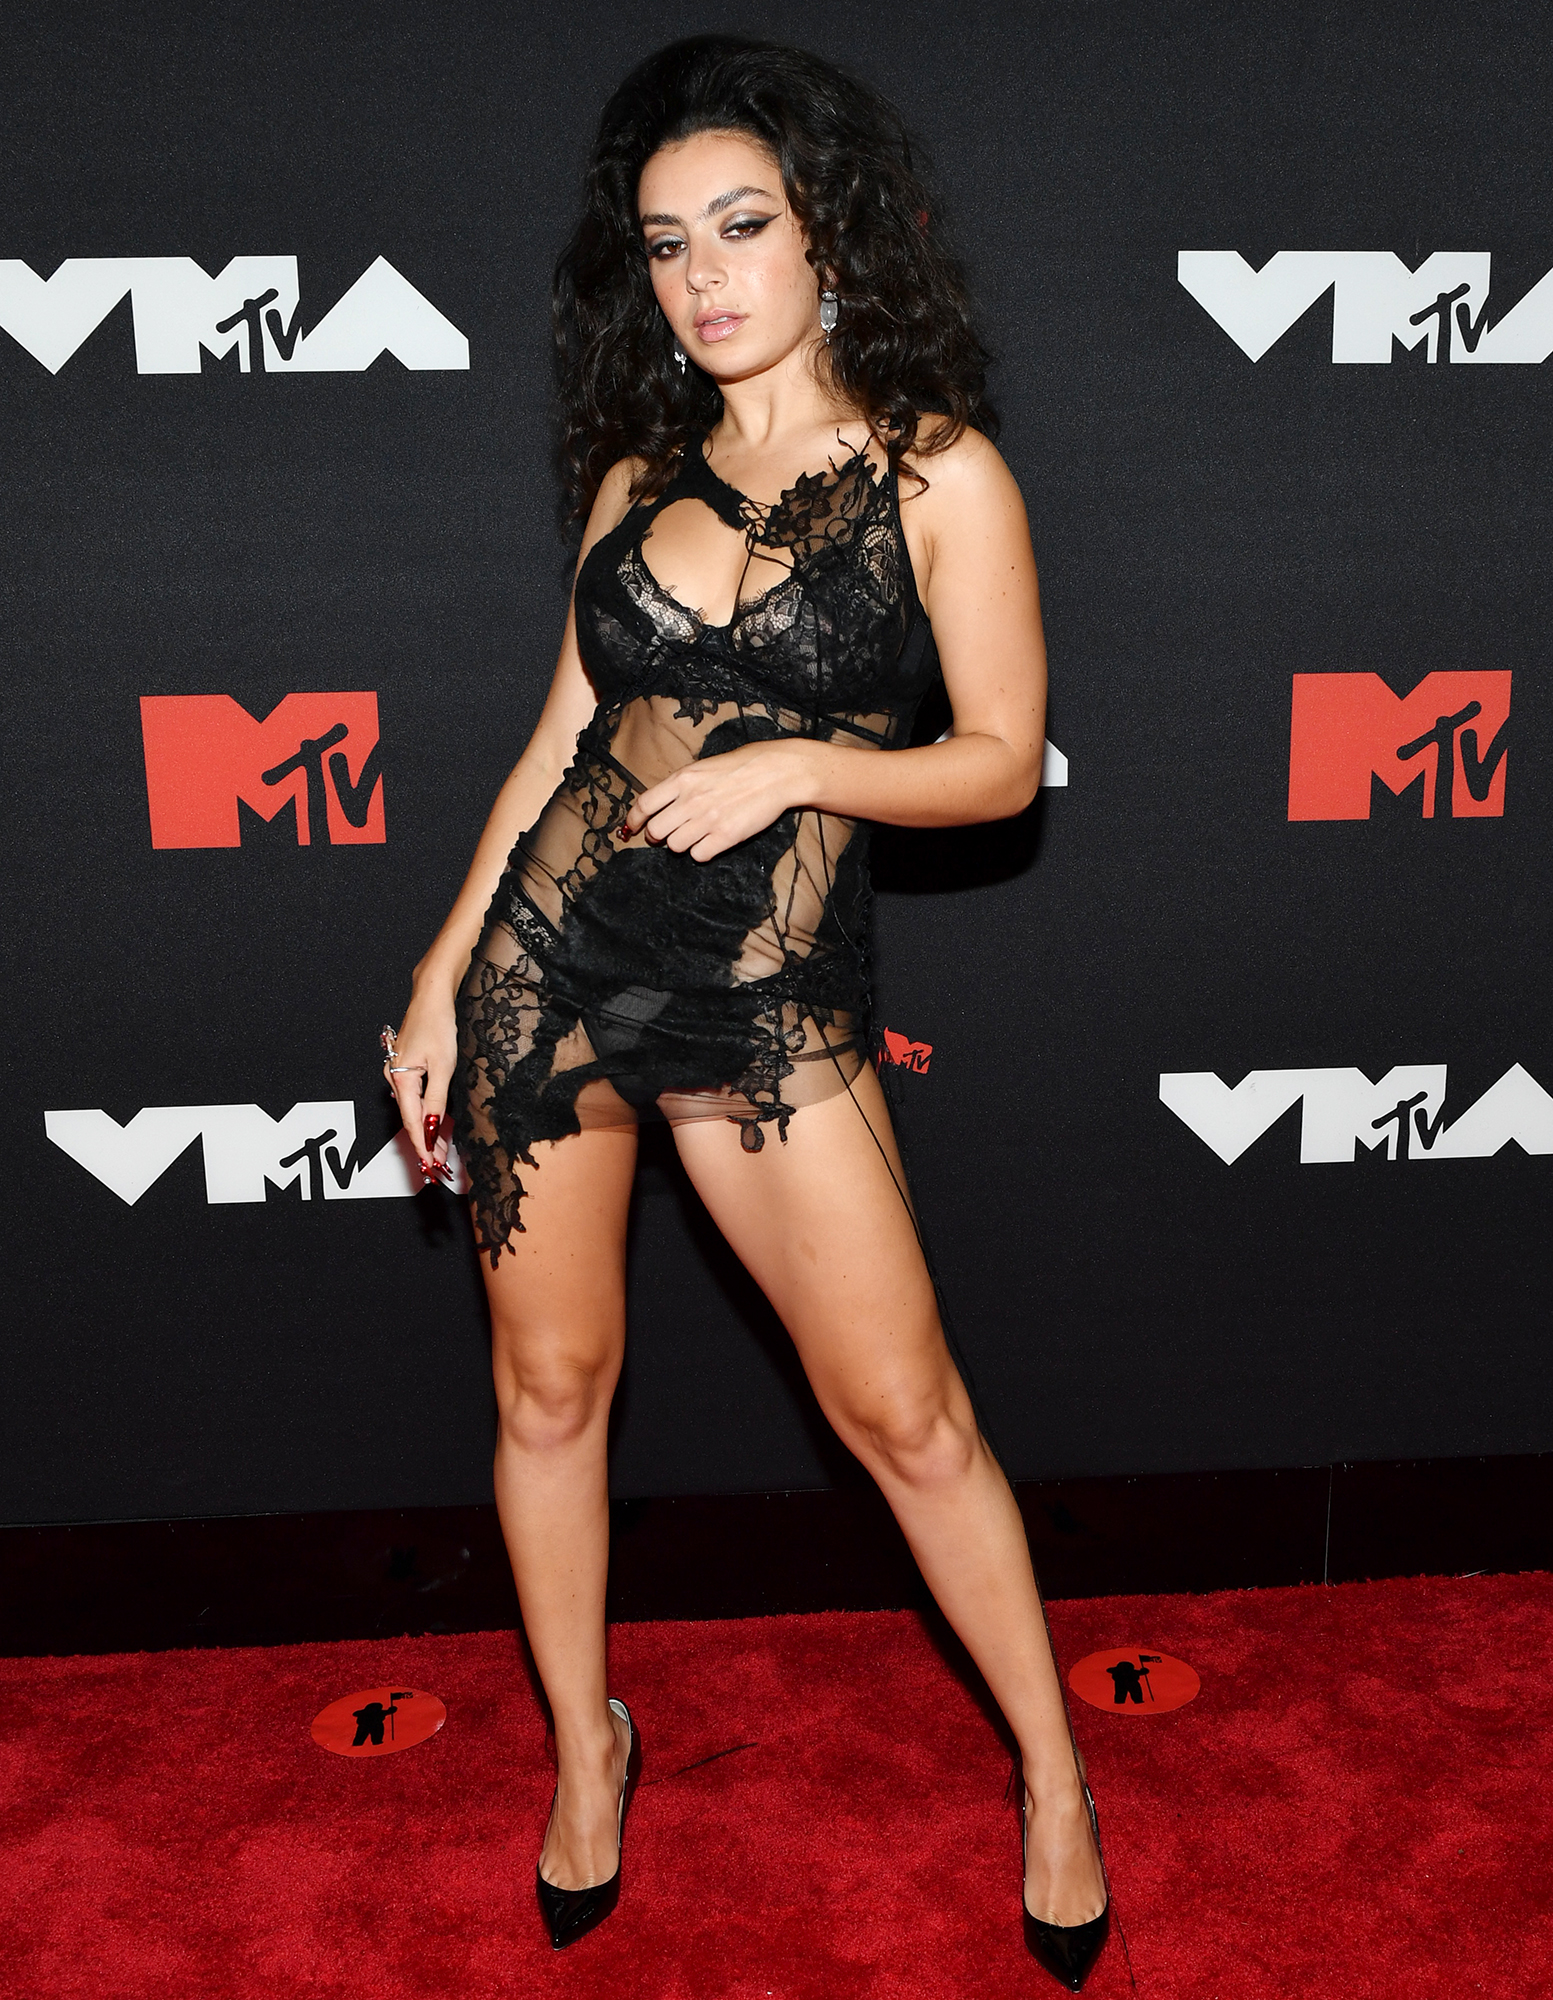 Charli XCX arrives at the 2021 MTV Video Music Awards